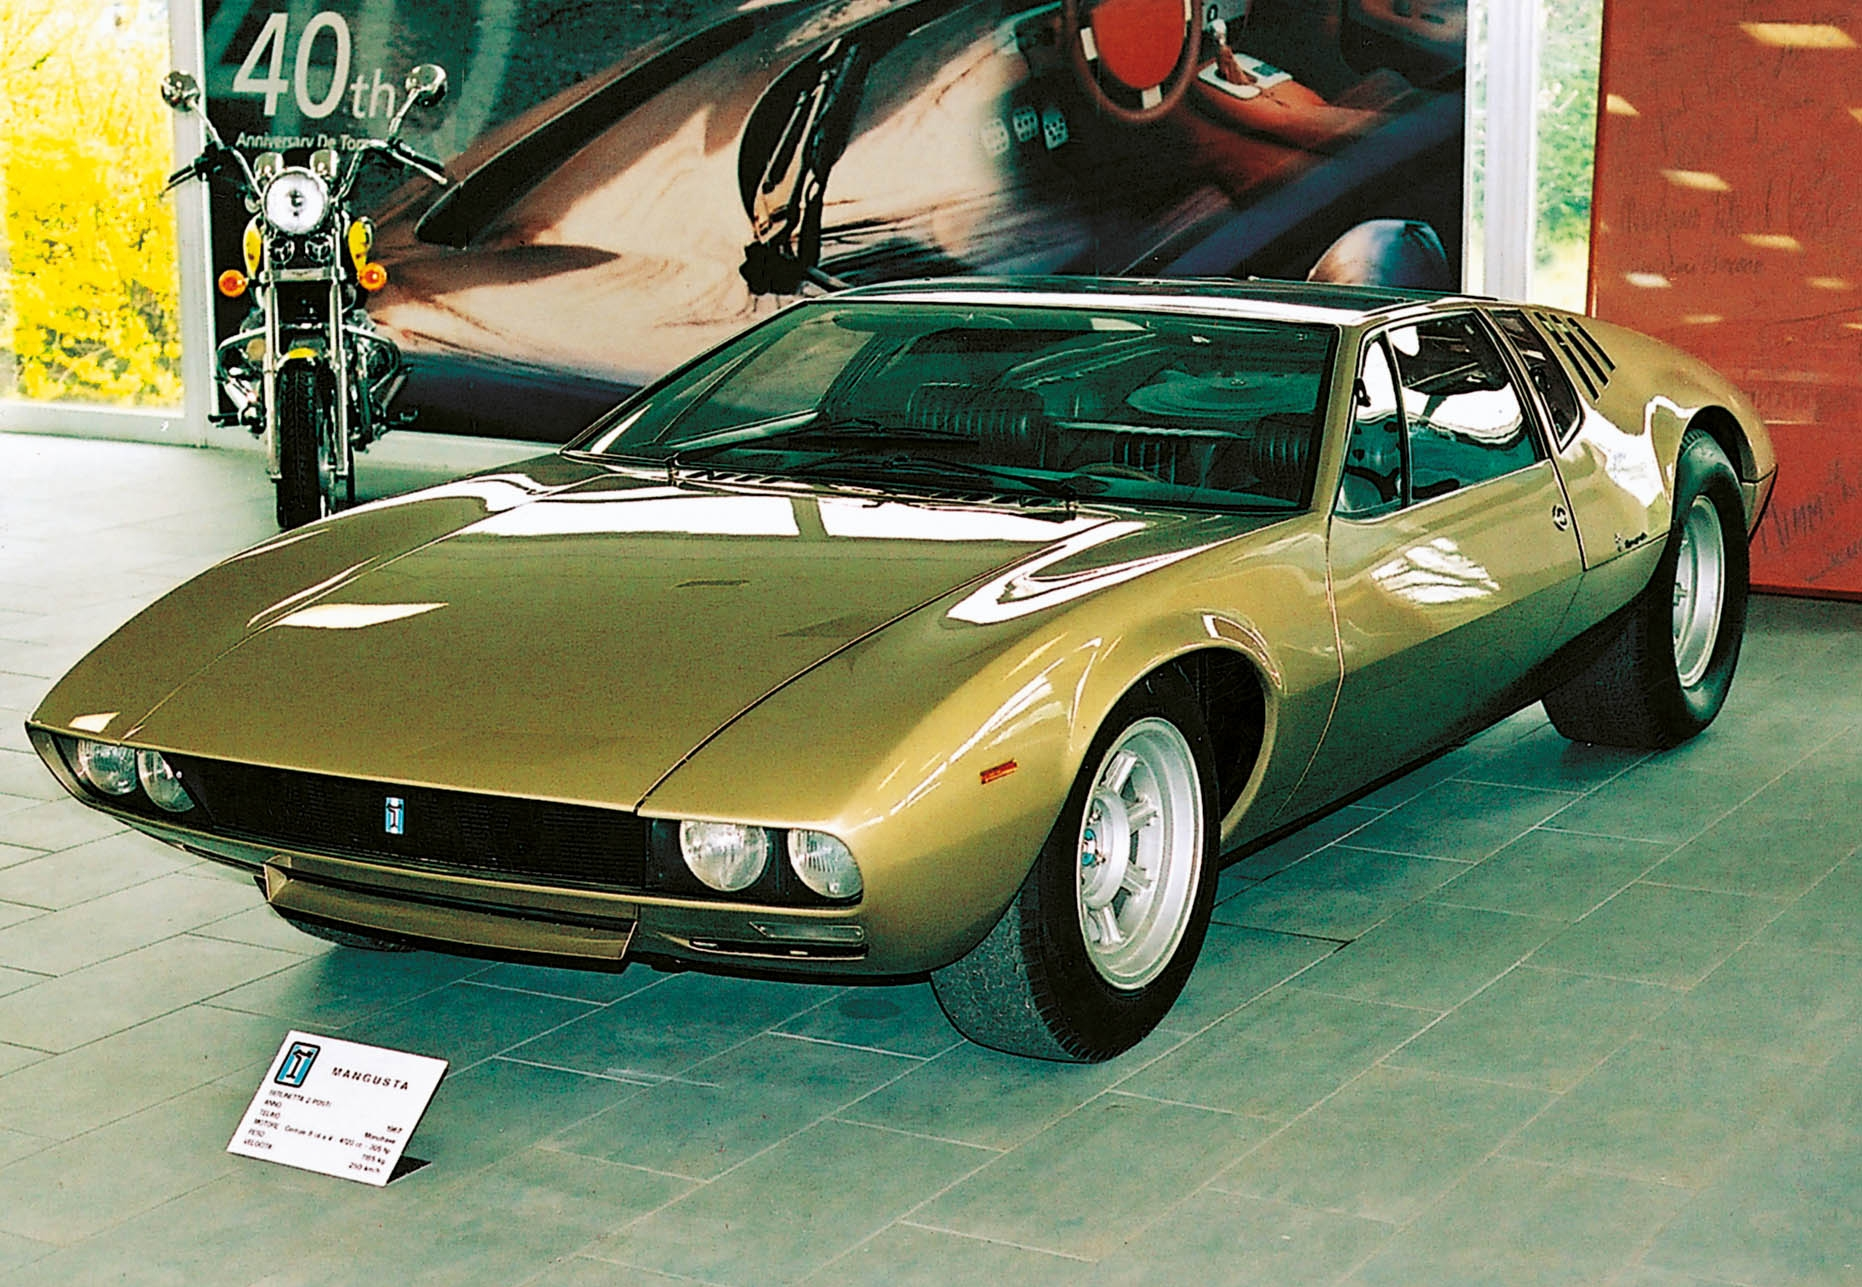 The famous gold Mangusta prototype.